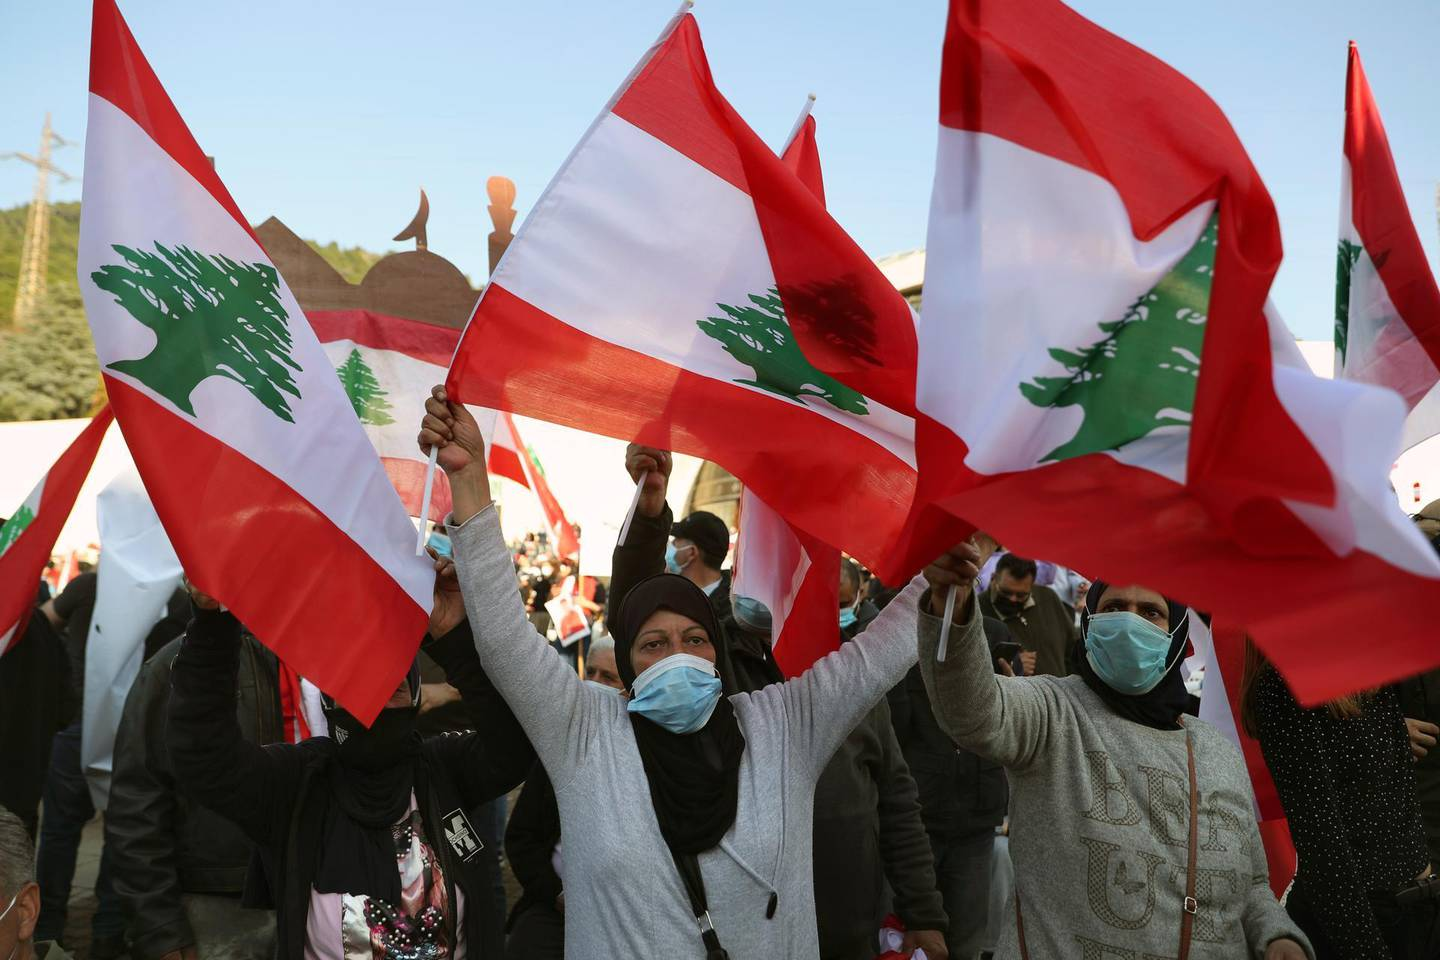 Muslims women wave Lebanese flags as Maronite Patriarch Bechara Rai speaks during a rally at the church's seat in Bkirki, northeast of Beirut, Lebanon, Saturday, Feb. 27, 2021. Thousands of people participated Saturday in a rally held in Bkerki, the headquarters of the Maronite Catholic church to express their support to Cardinal Bechara Rai's calls for Lebanon to become a neutral state and for an international conference to help Lebanon get out of its political and economic crisis. (AP Photo/Bilal Hussein)